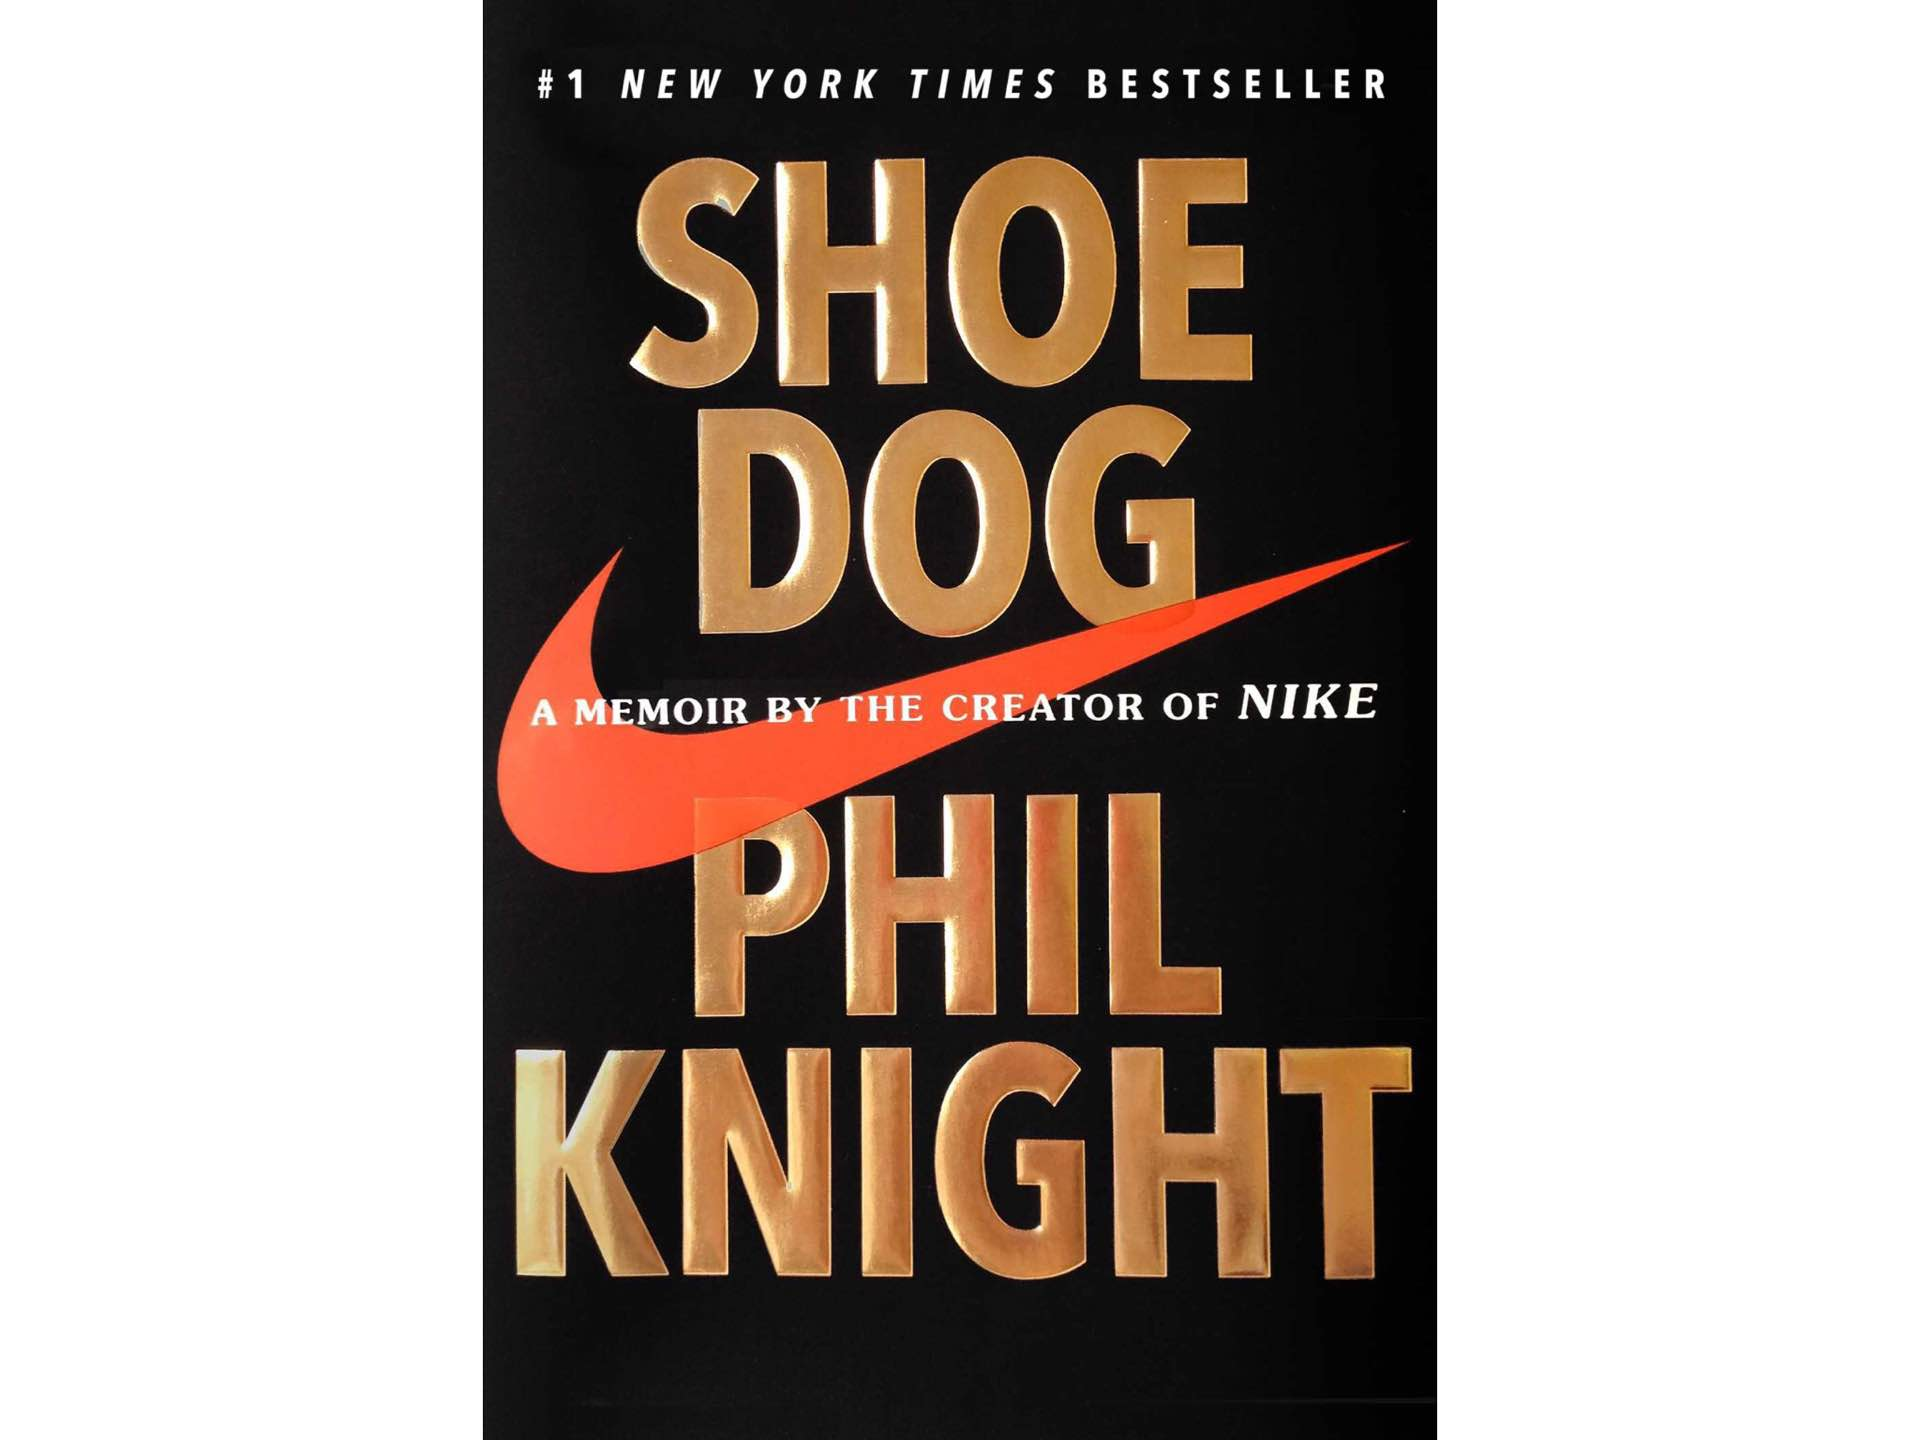 Dog Phil Tools Shoe and Knight Toys 'van wEdqqHnF